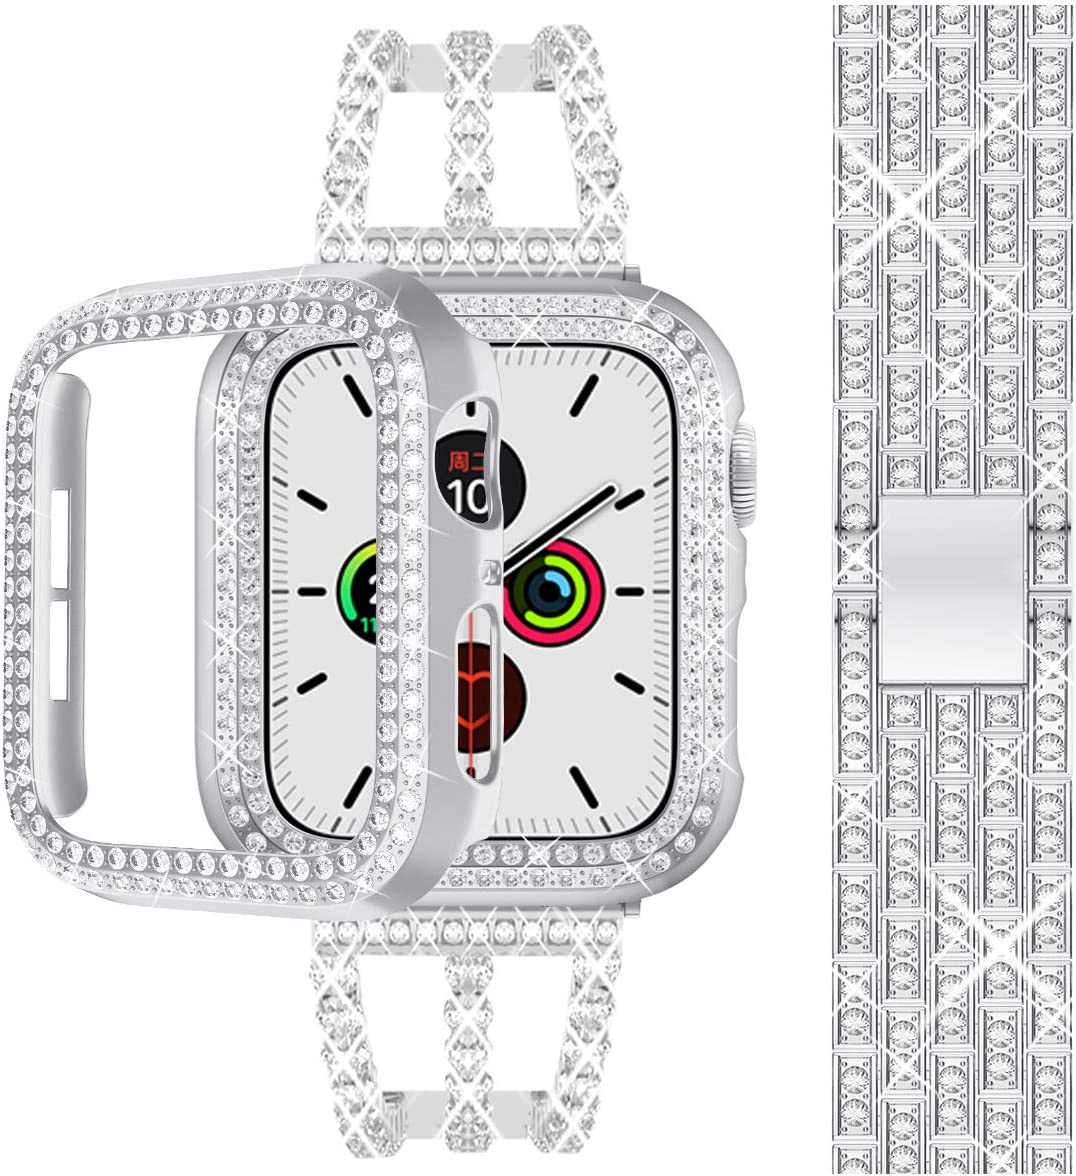 Compatible for Apple Watch Band 38 40 42 44mm, iWatch Band Series SE/6/5/4/3/2/1 + Bling Case, Stainless Steel + Metal Slim Rhinestone Diamond Strap, Bracelet Replacement, Silver 40mm